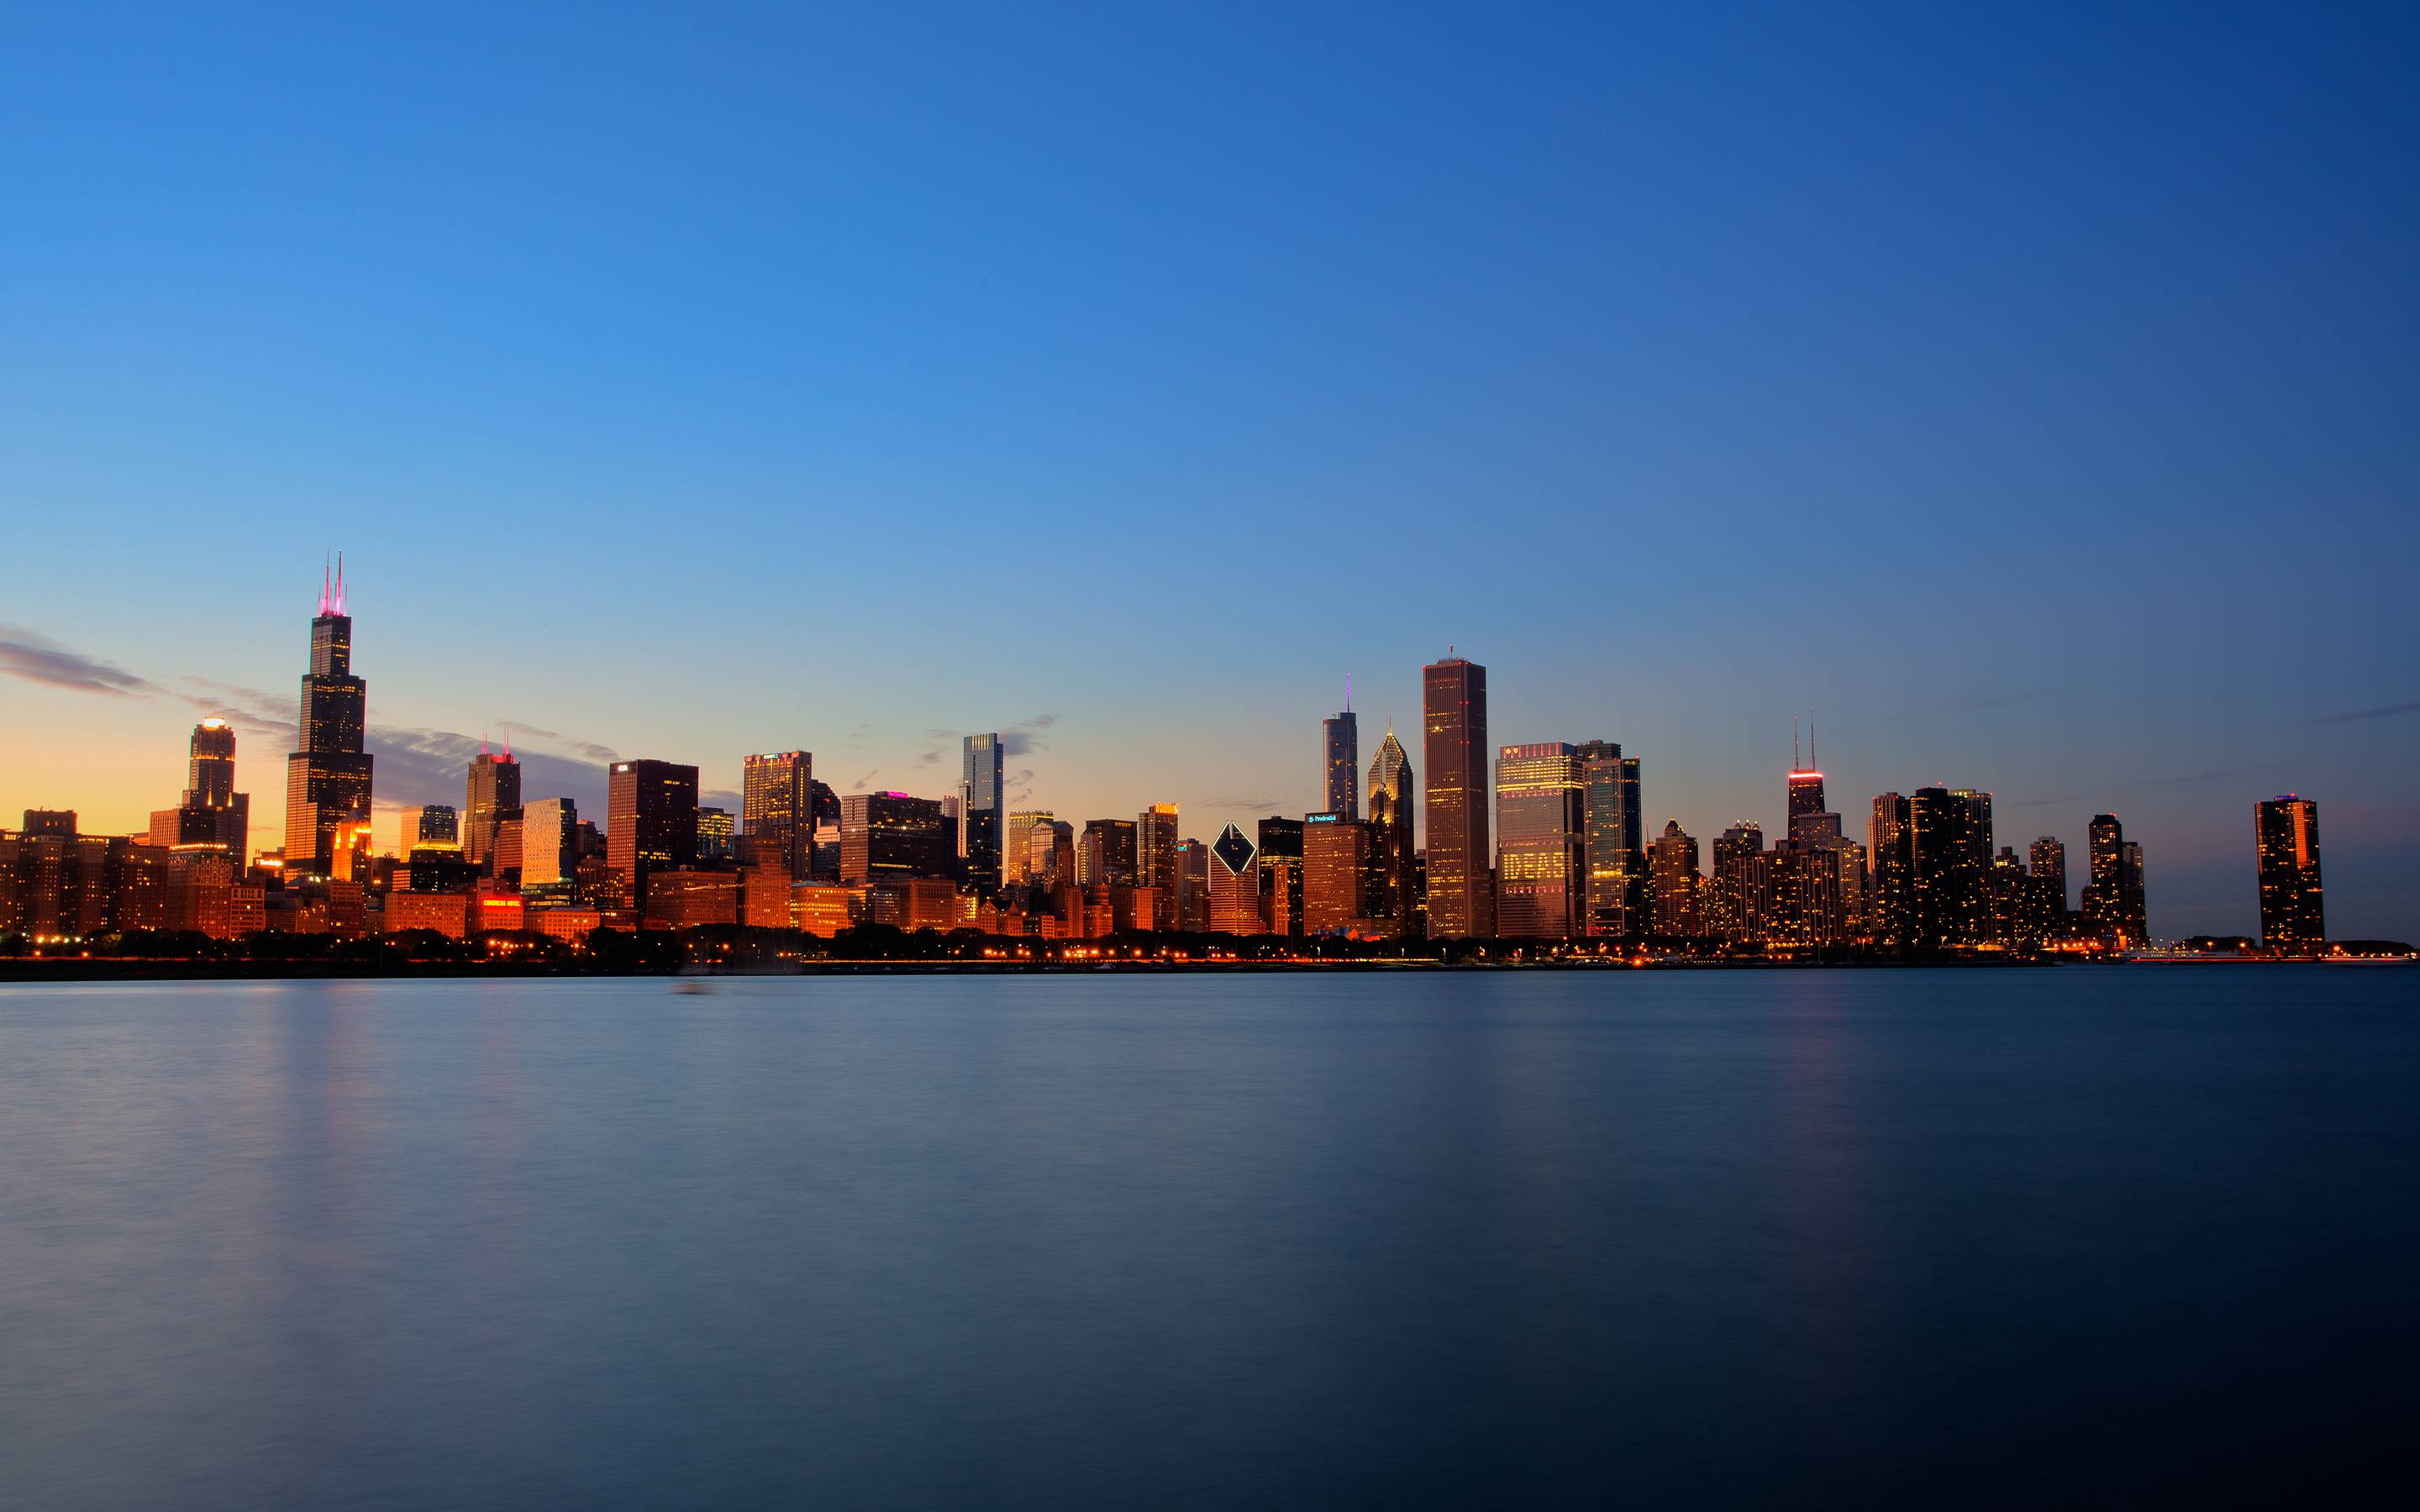 chicago windy city wallpapers - photo #24